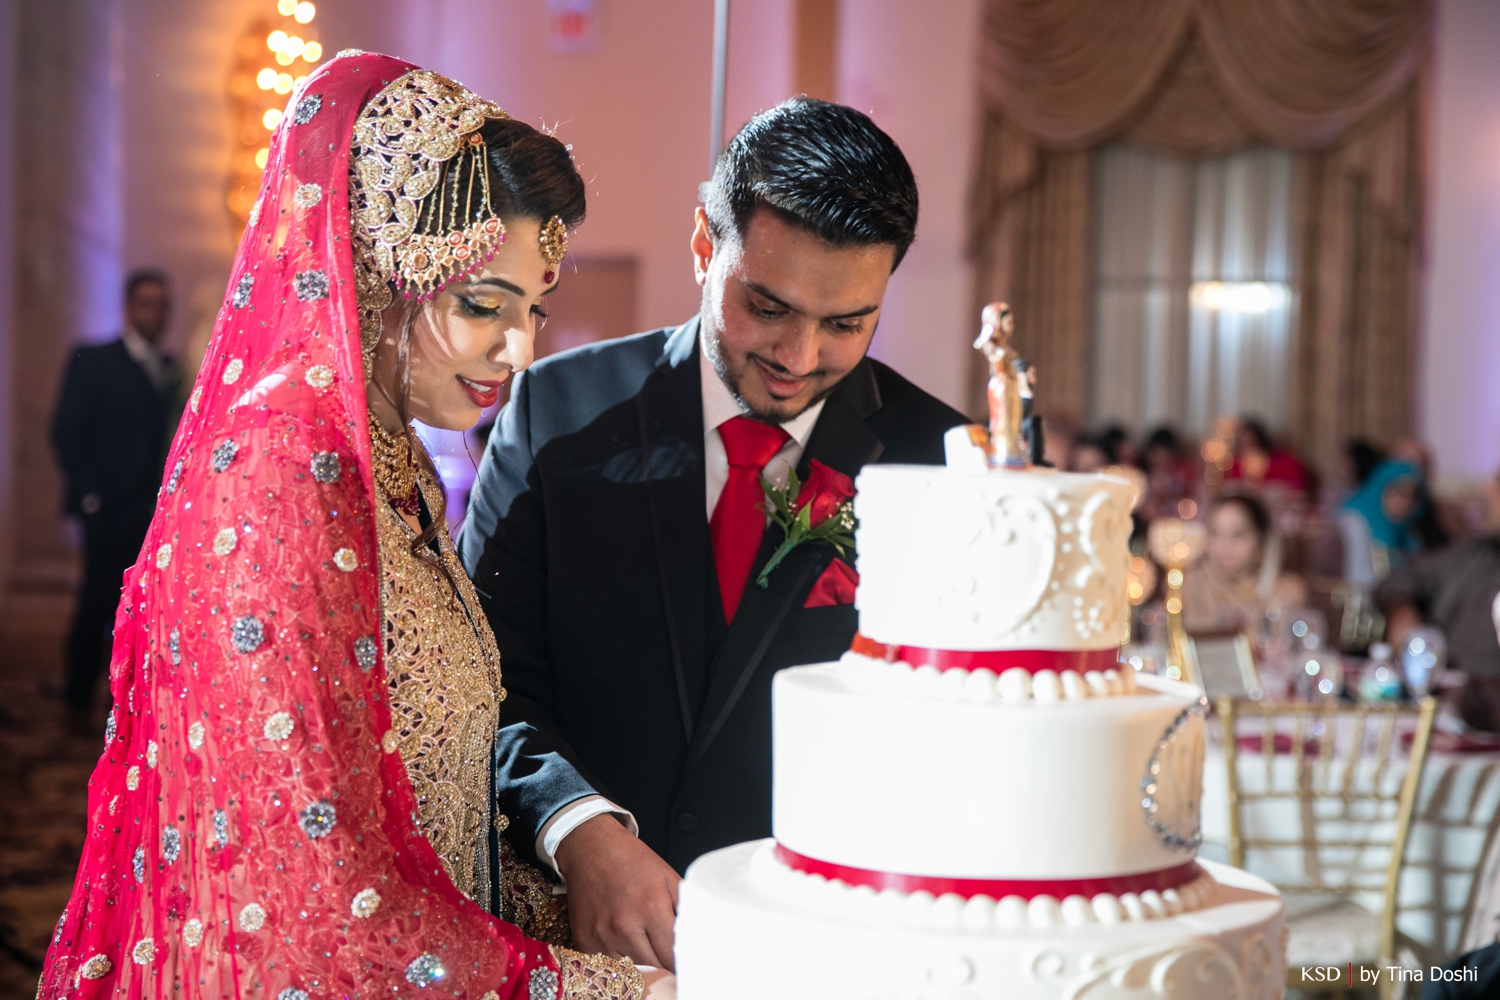 nj_south_asian_wedding_0112